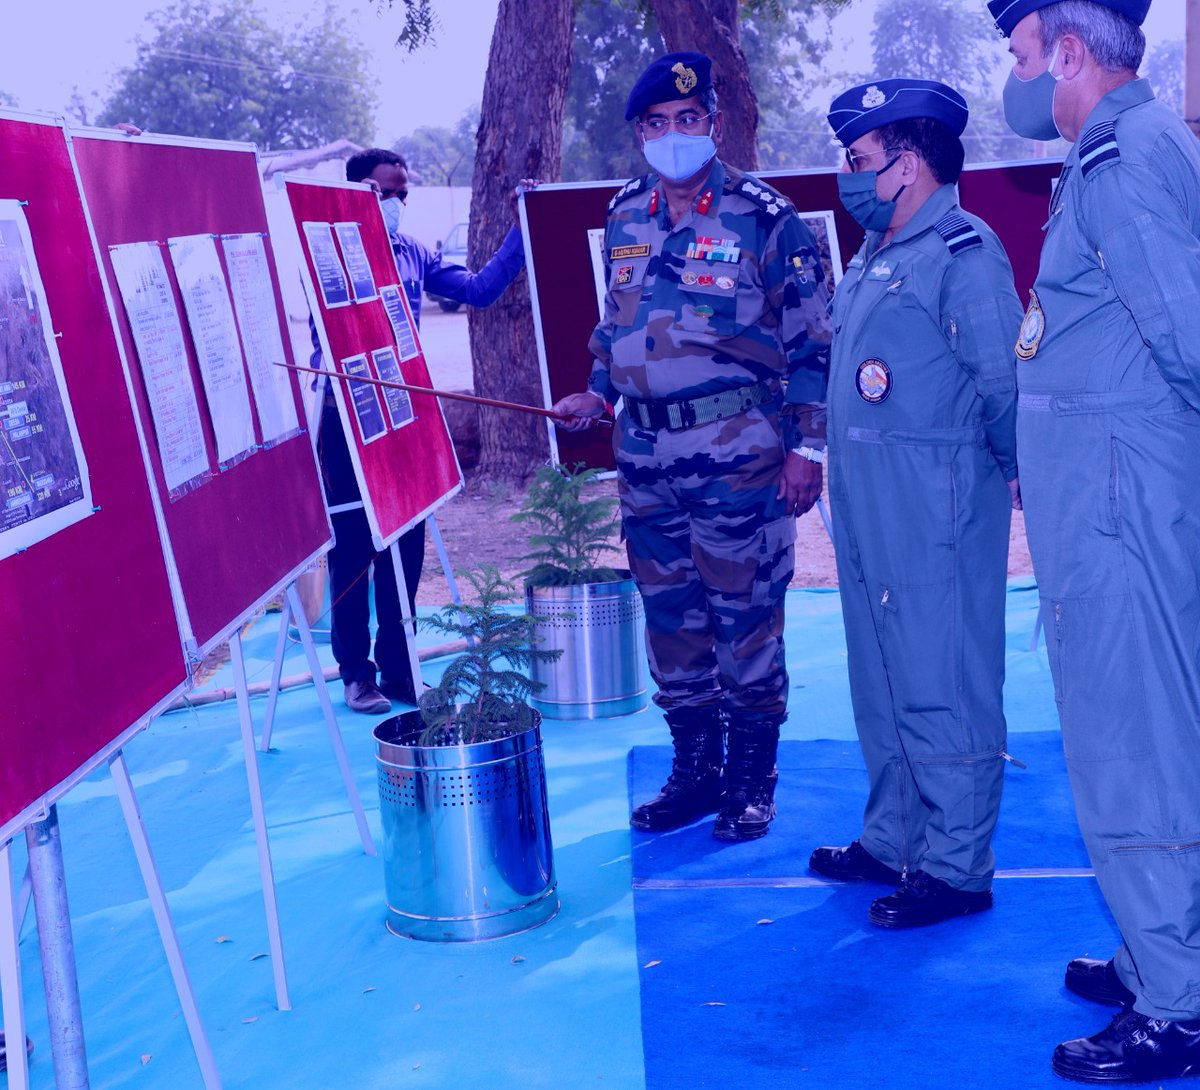 IAF chief inaugurates operational infra activities at Deesa Air Force station in Gujarat